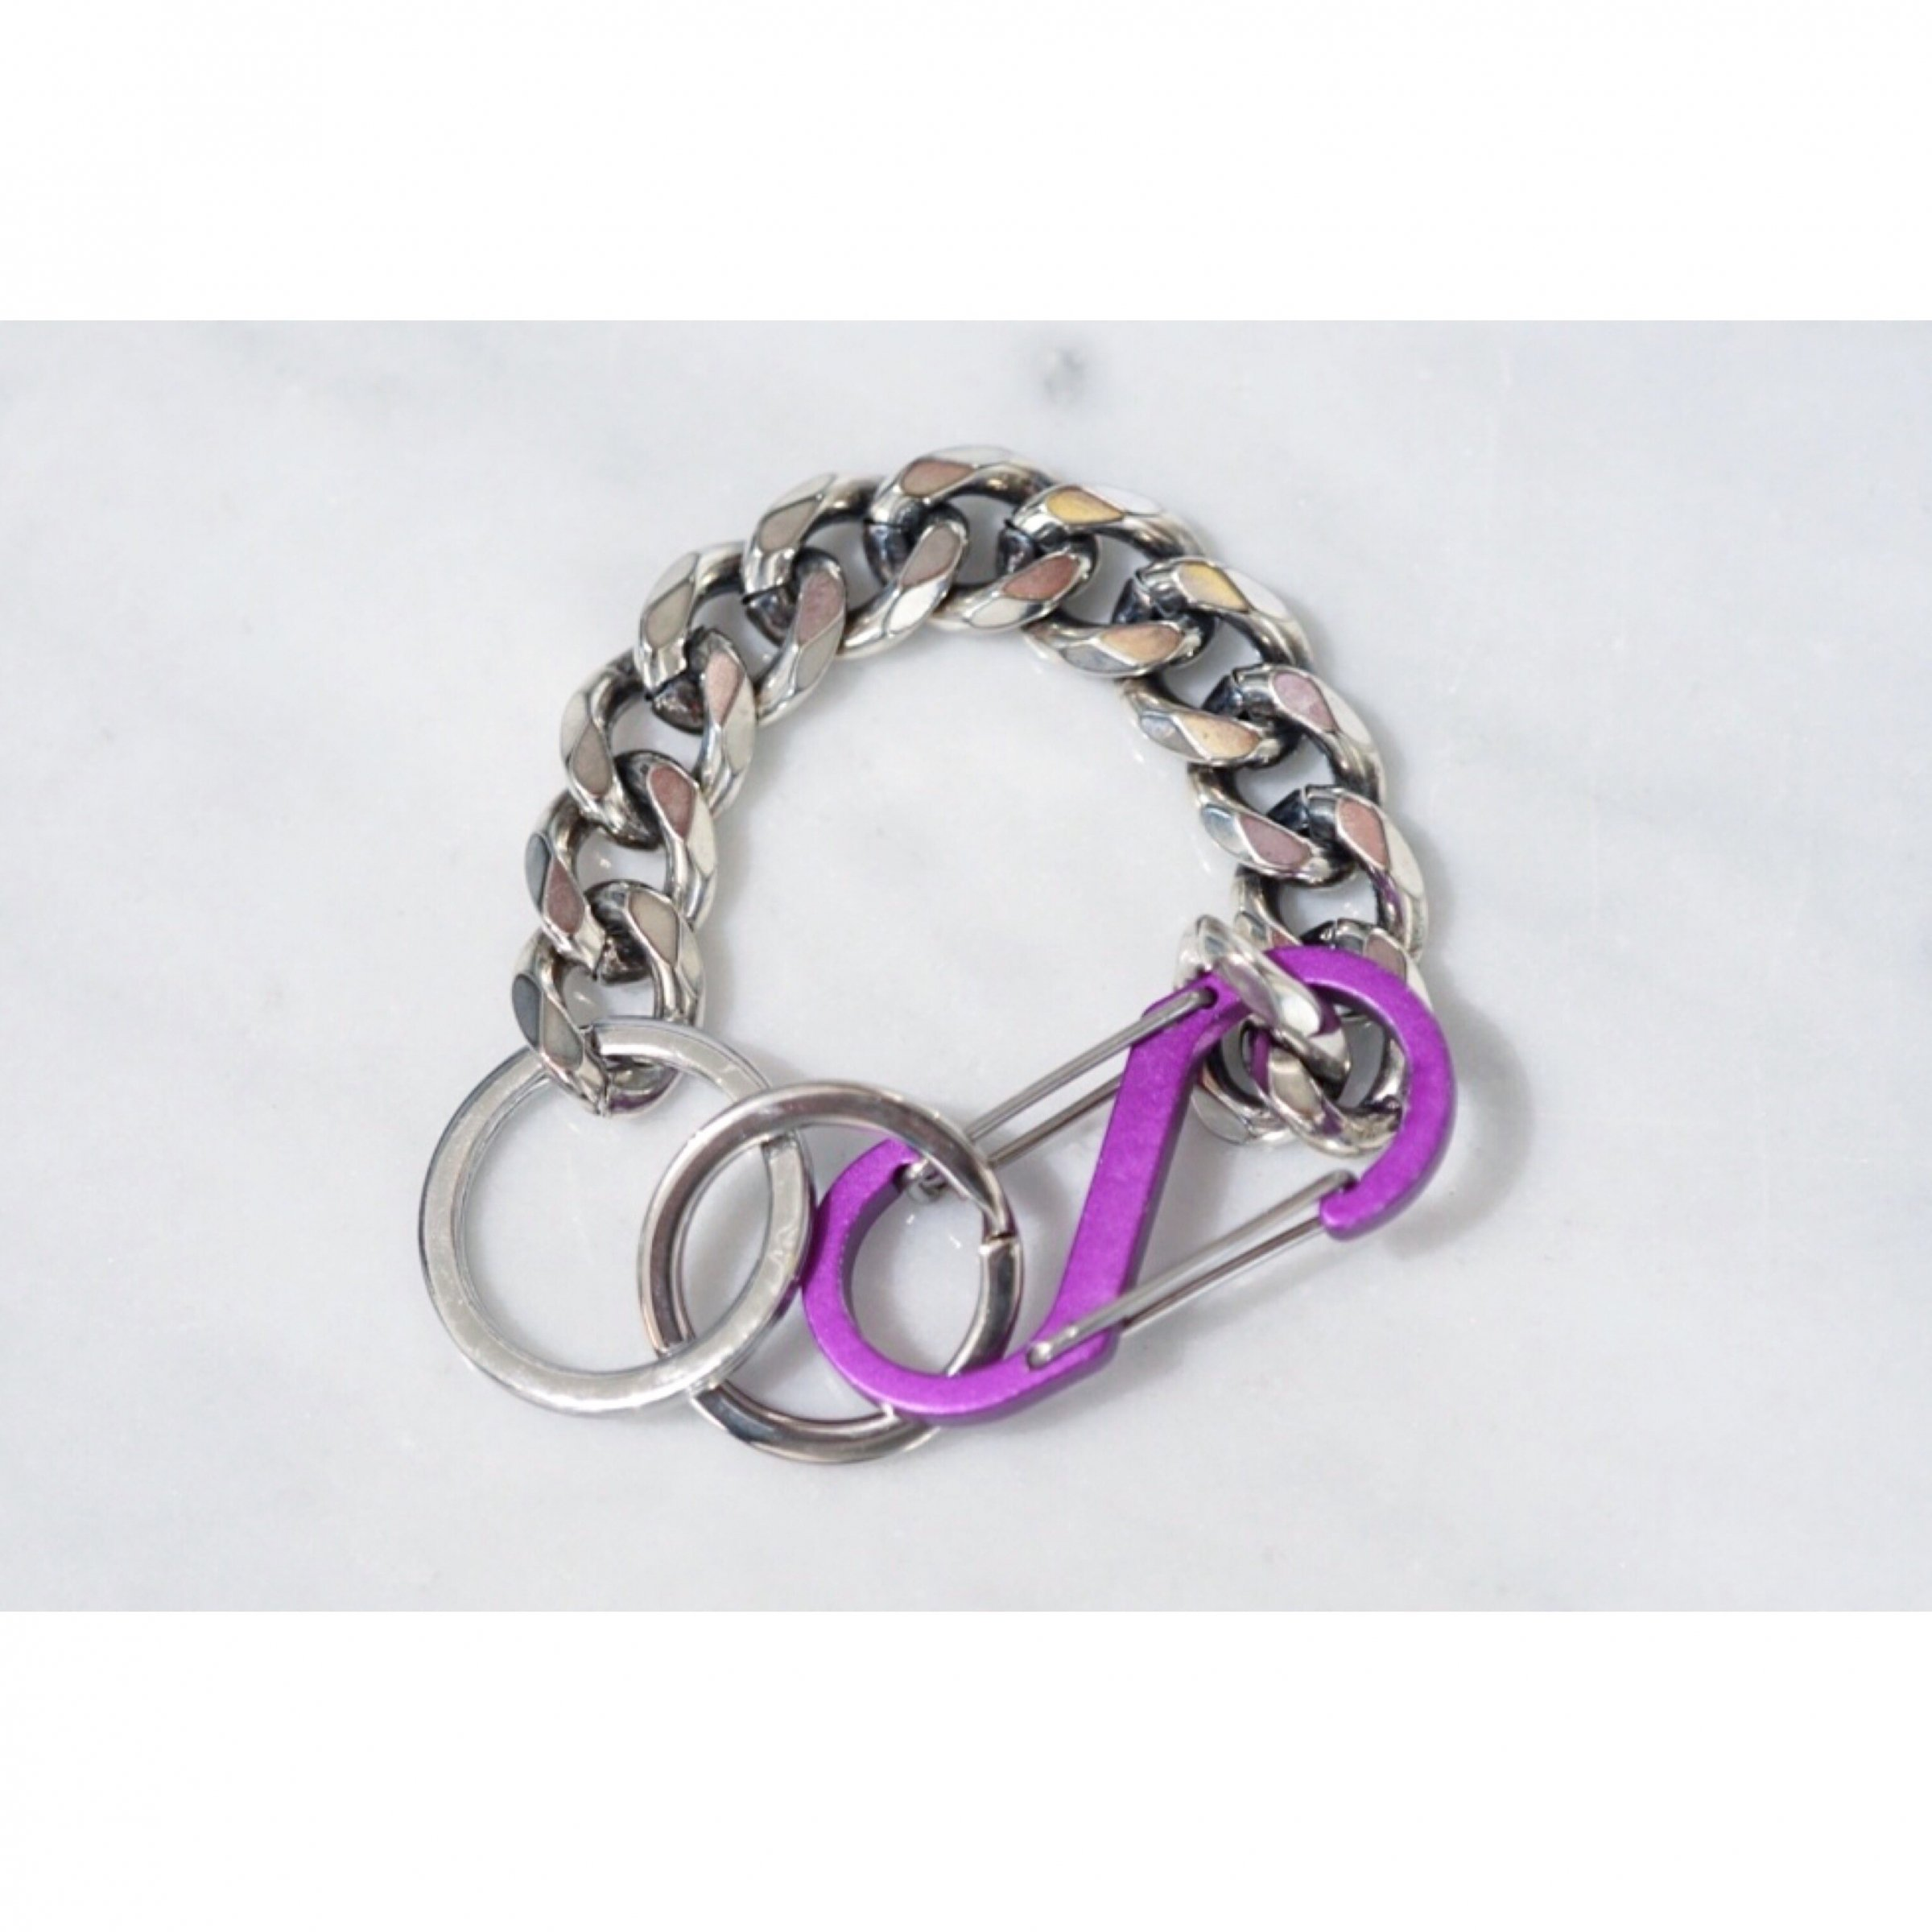 MARTINE ALI-COLOR CUBAN BRACELET HEIRLOOM SILVER/PURPLE